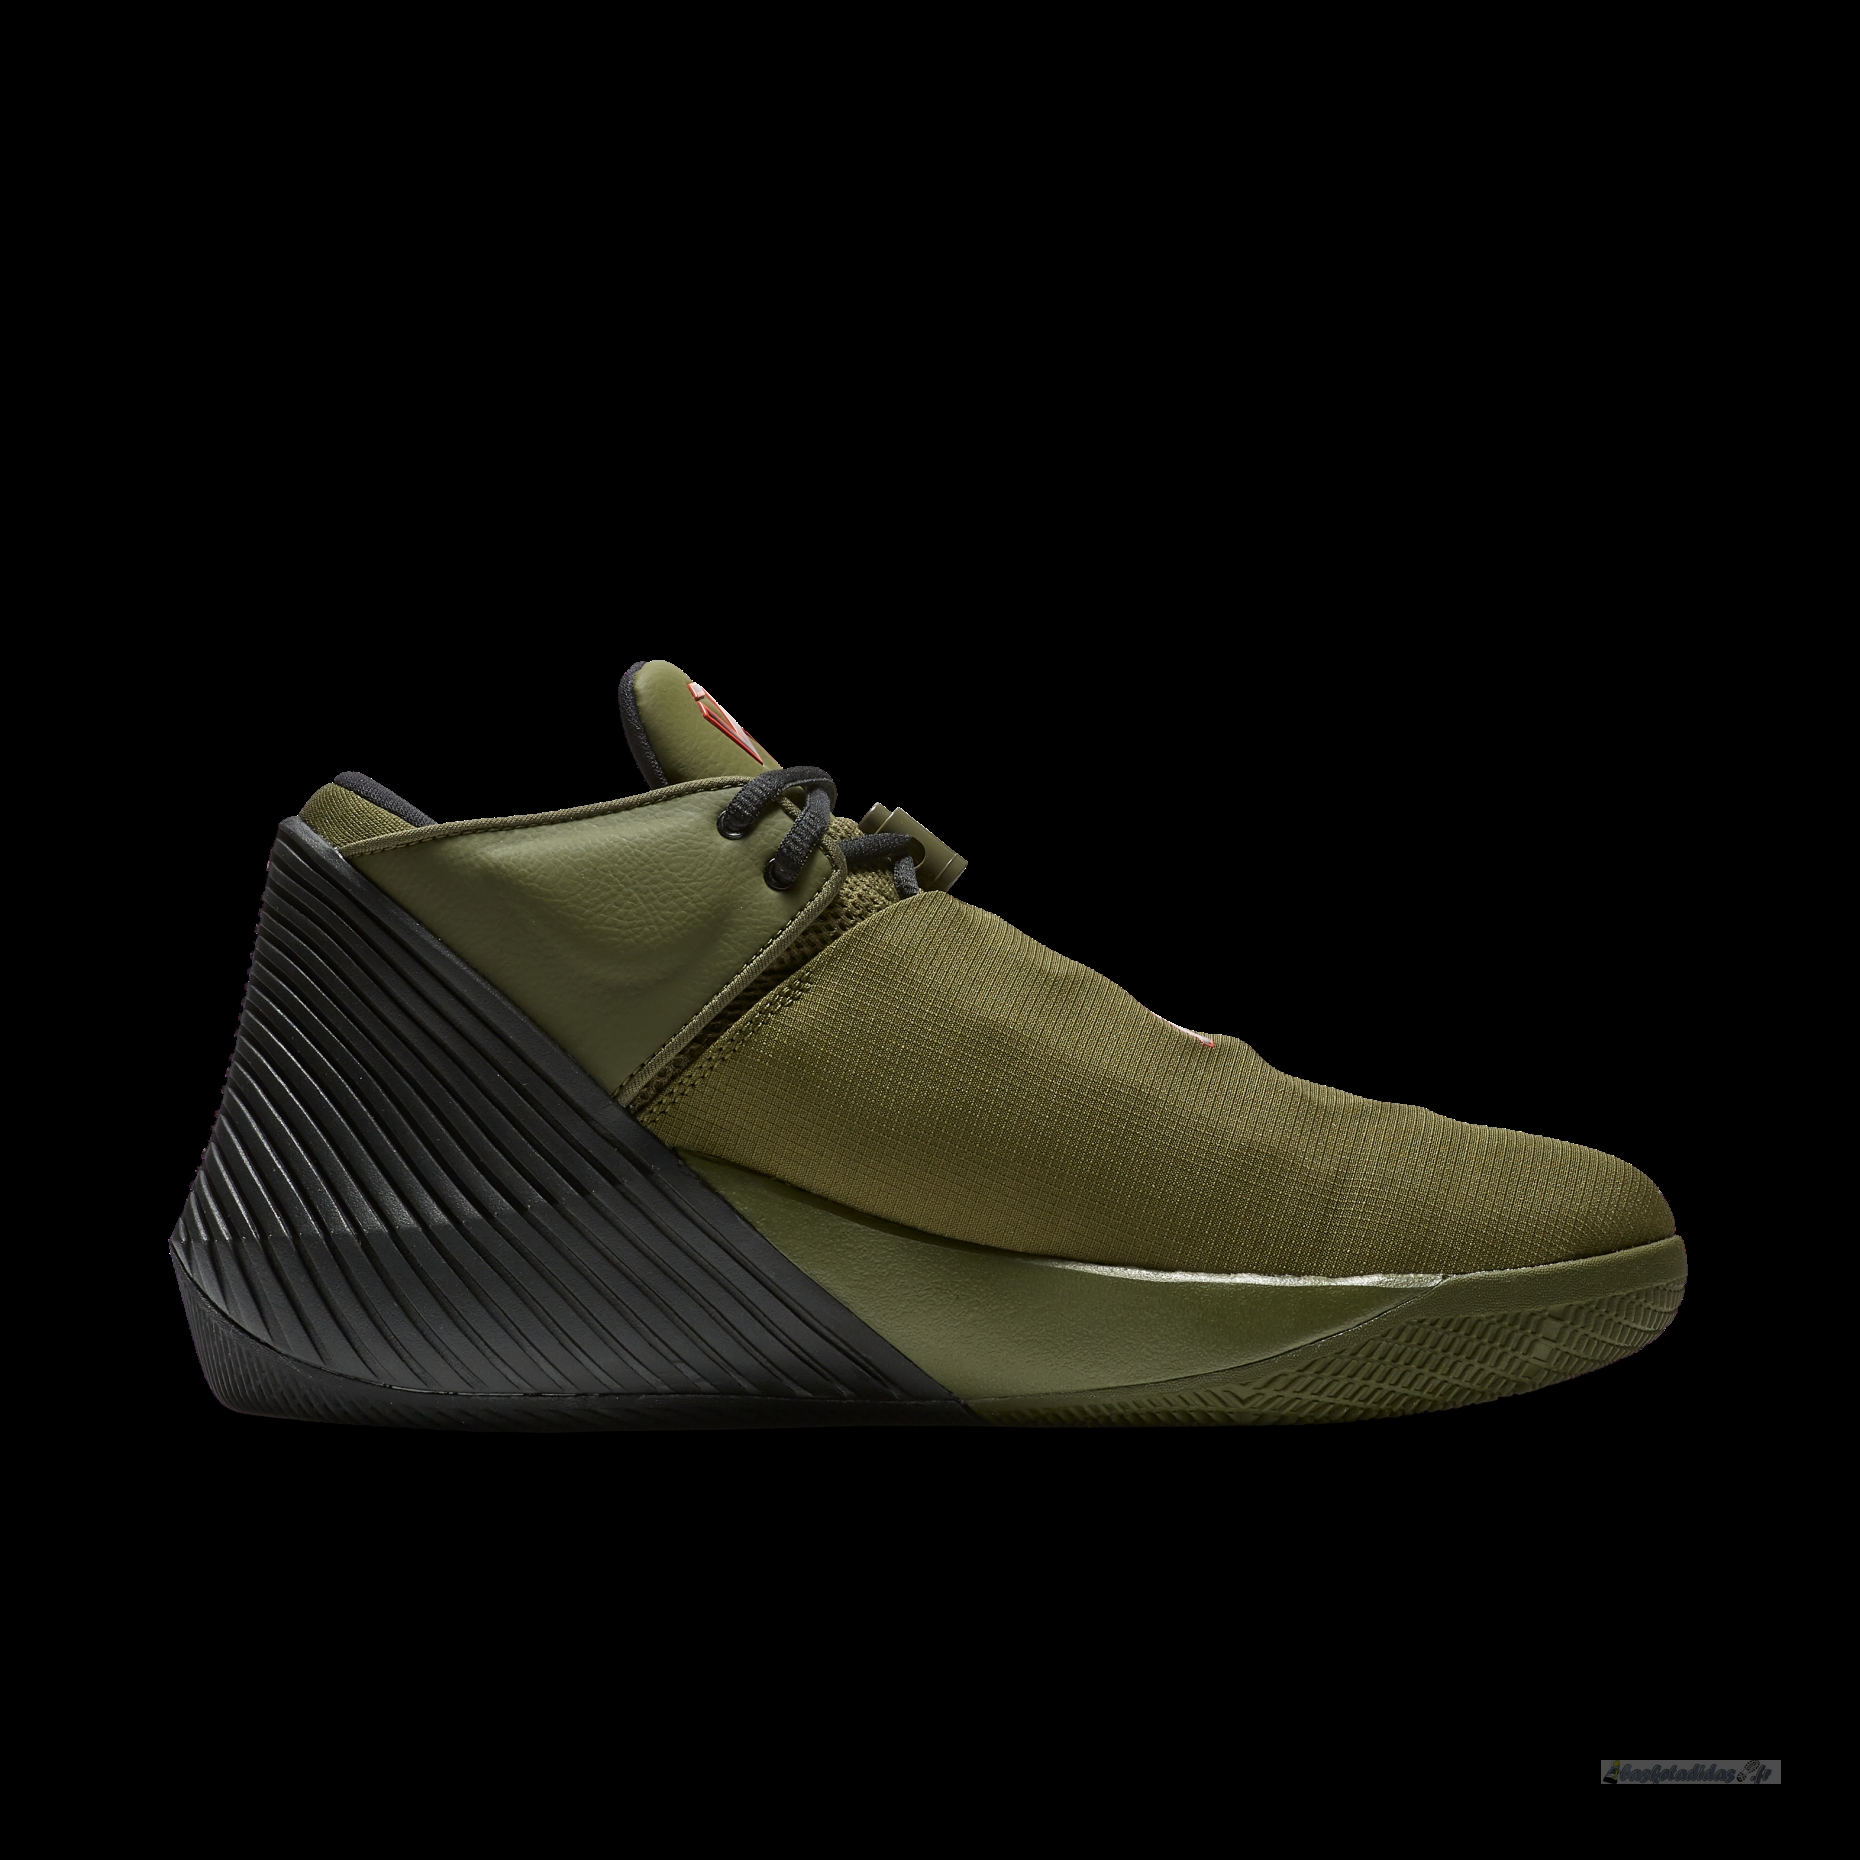 Chaussure de Basket Jordan Why Not Zer0.1 Low Pfx Olive (ar0346-300)